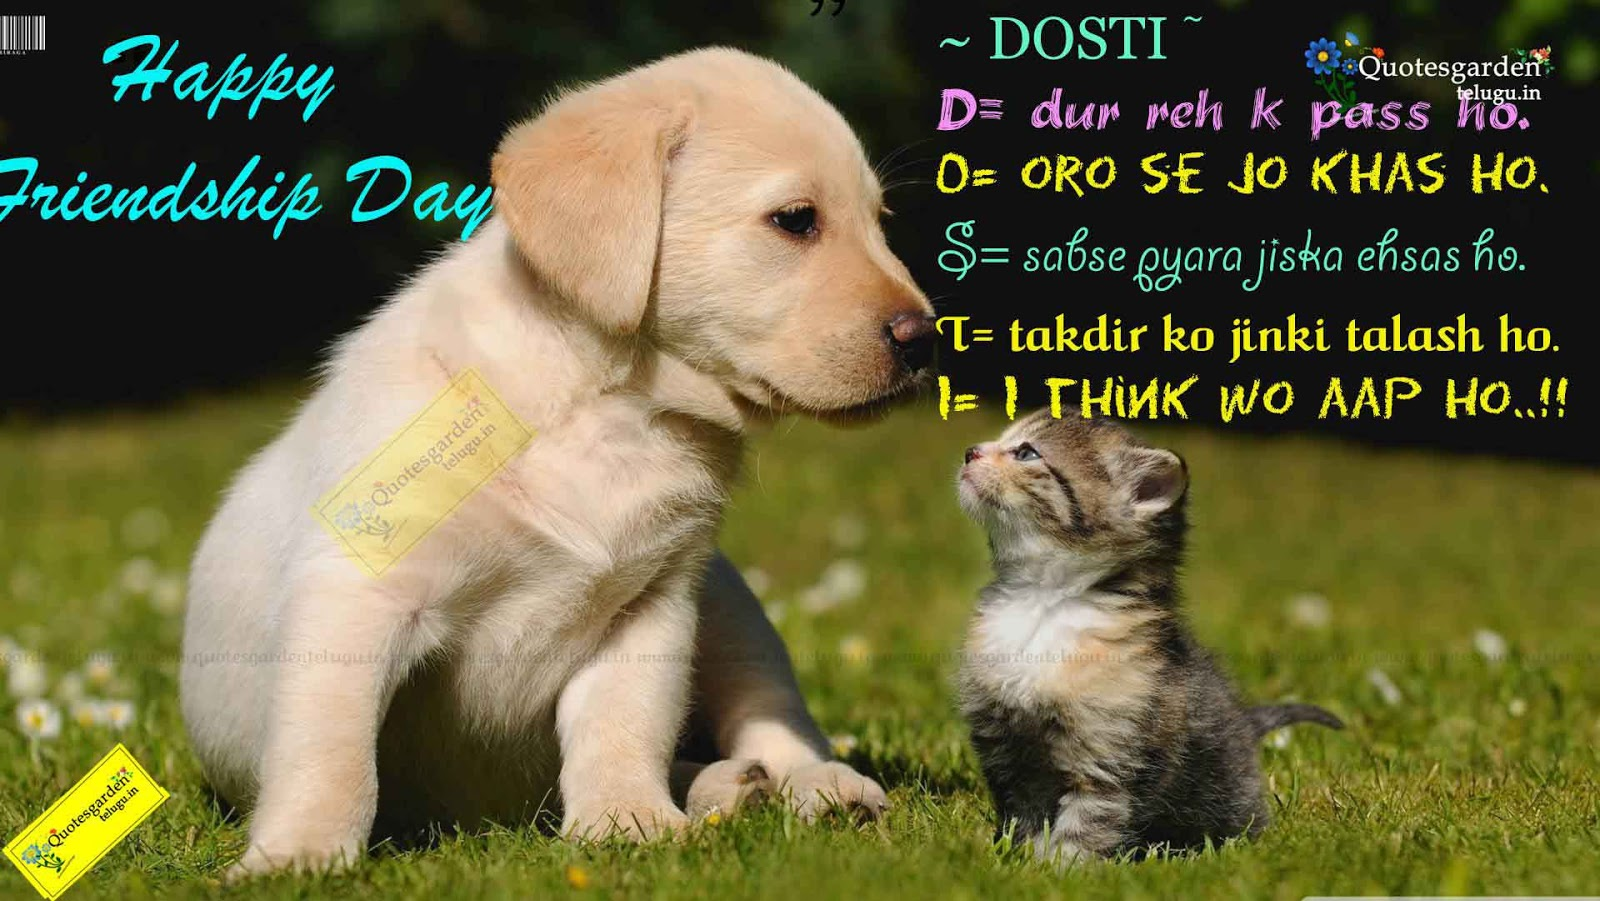 Friendship day image with thought in hindi